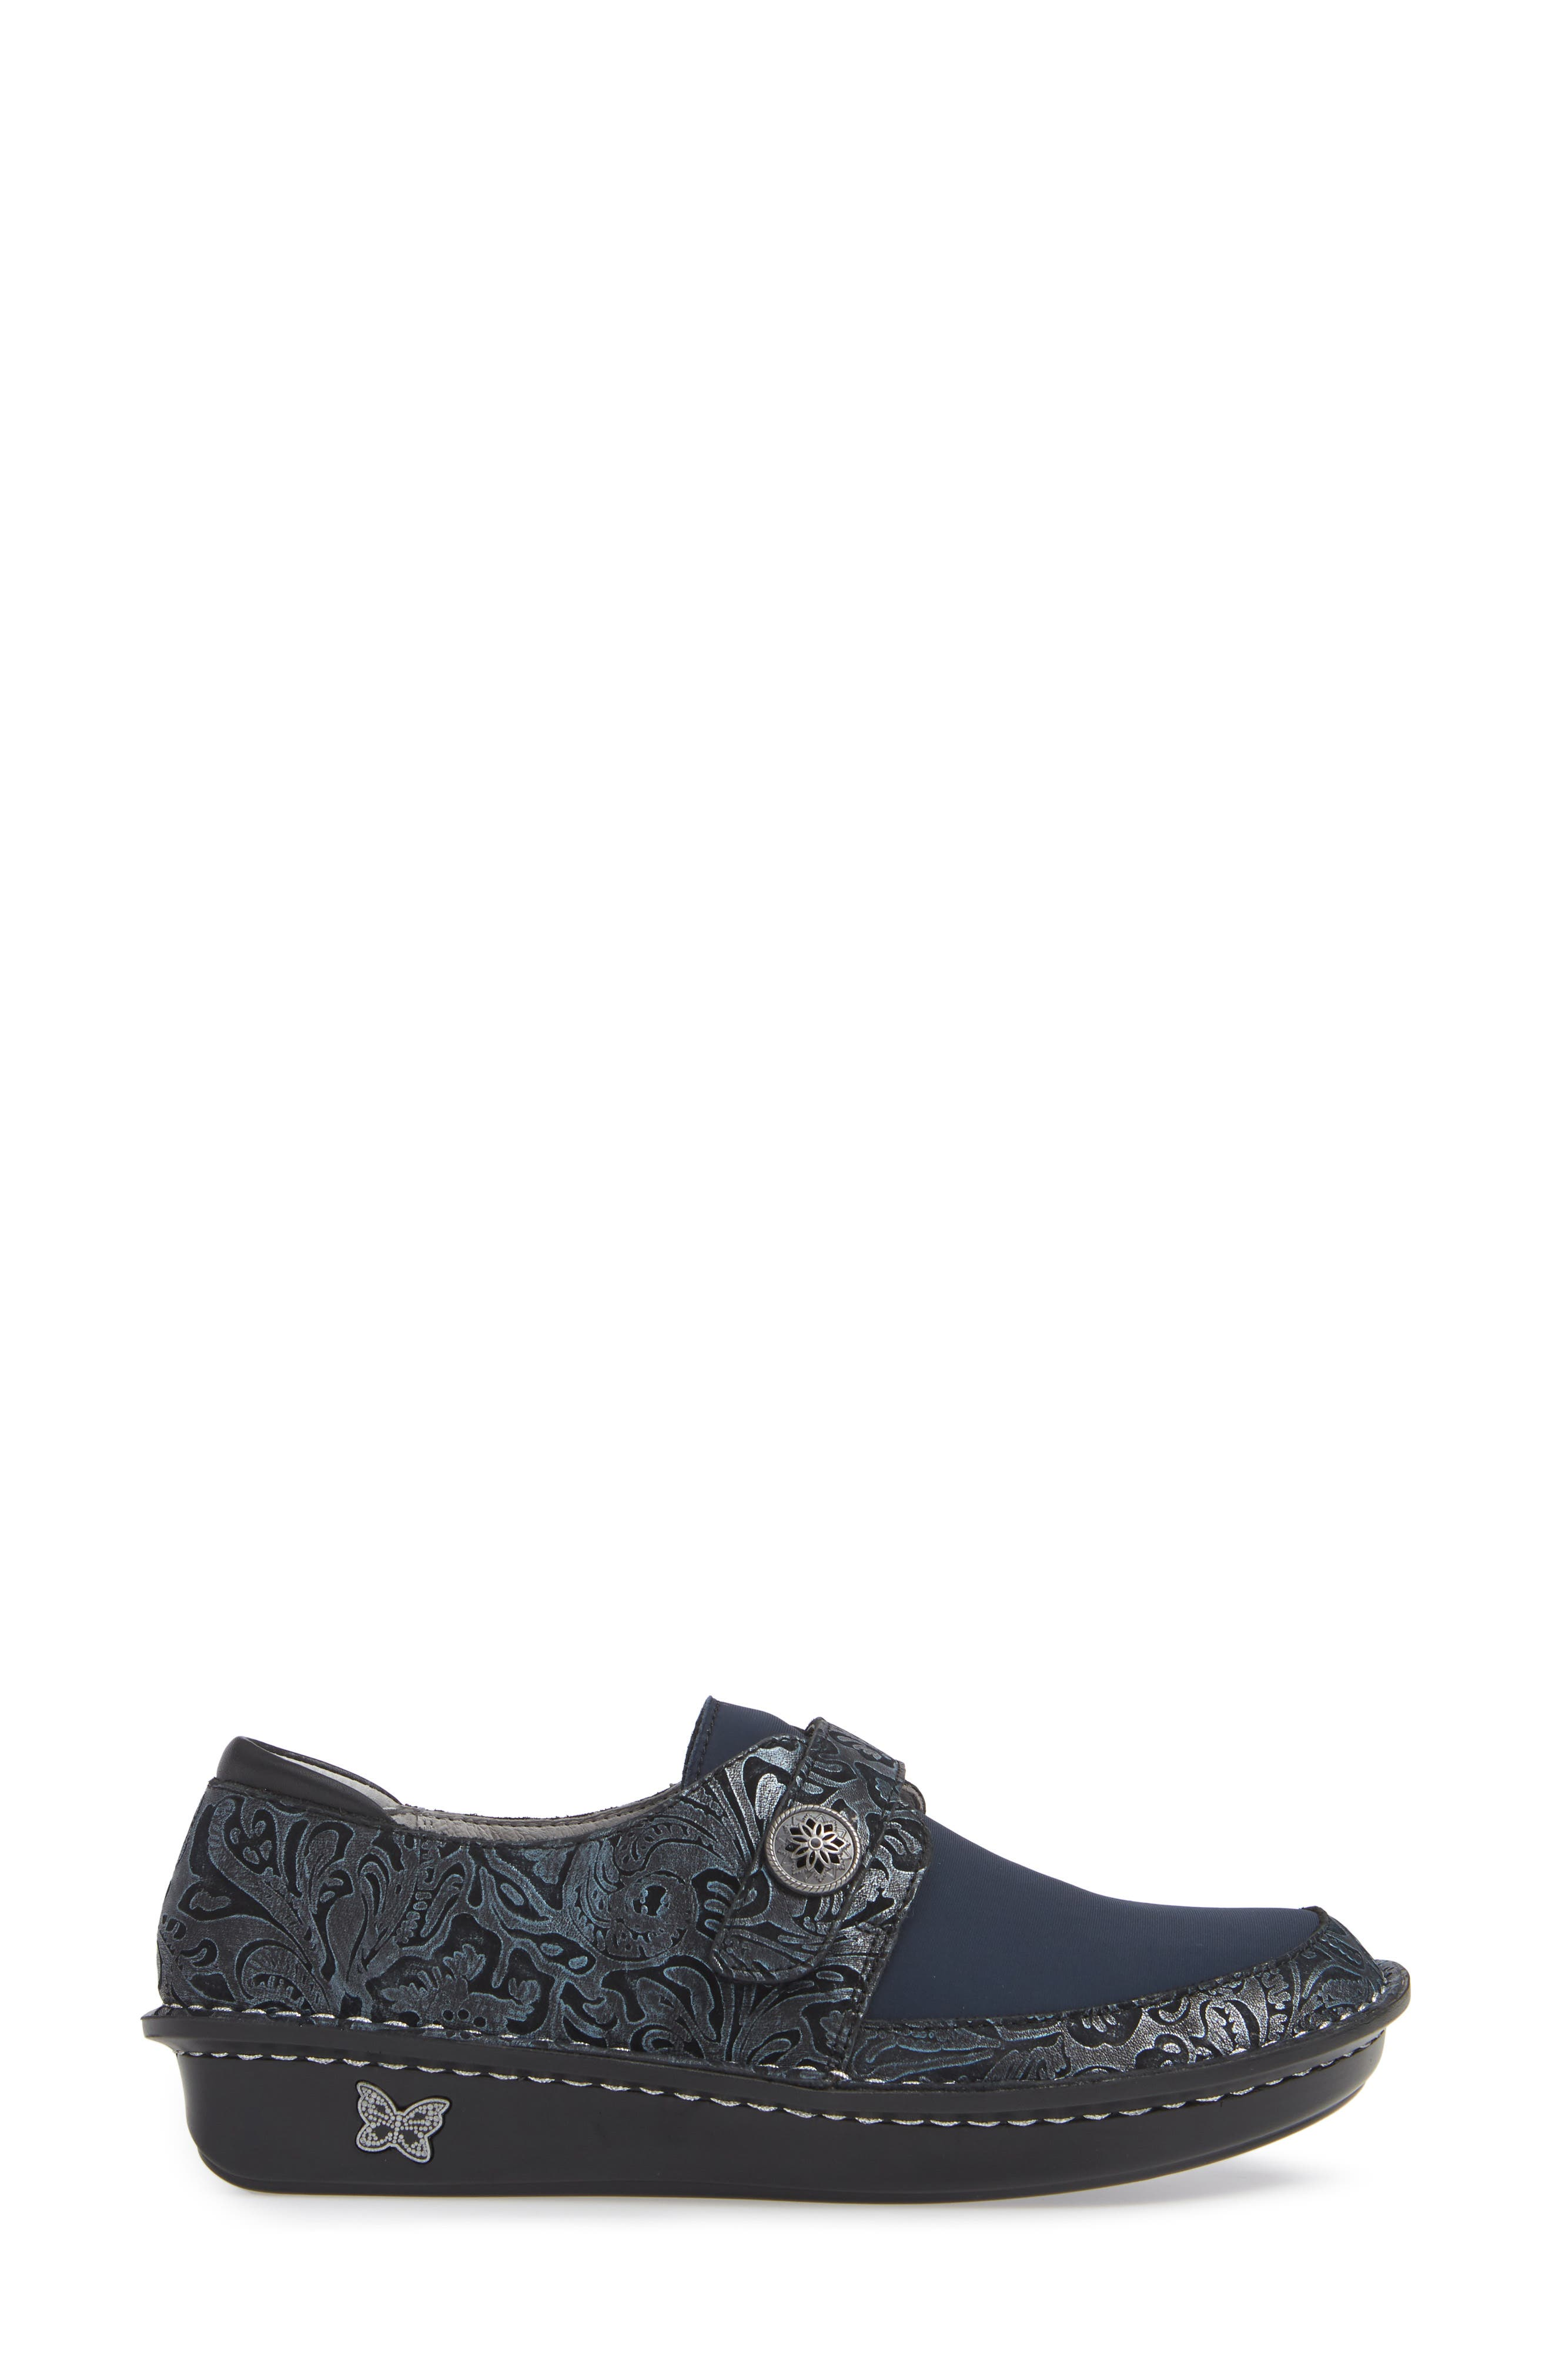 ALEGRIA, Brenna Slip-On, Alternate thumbnail 3, color, NAVY SWISH LEATHER